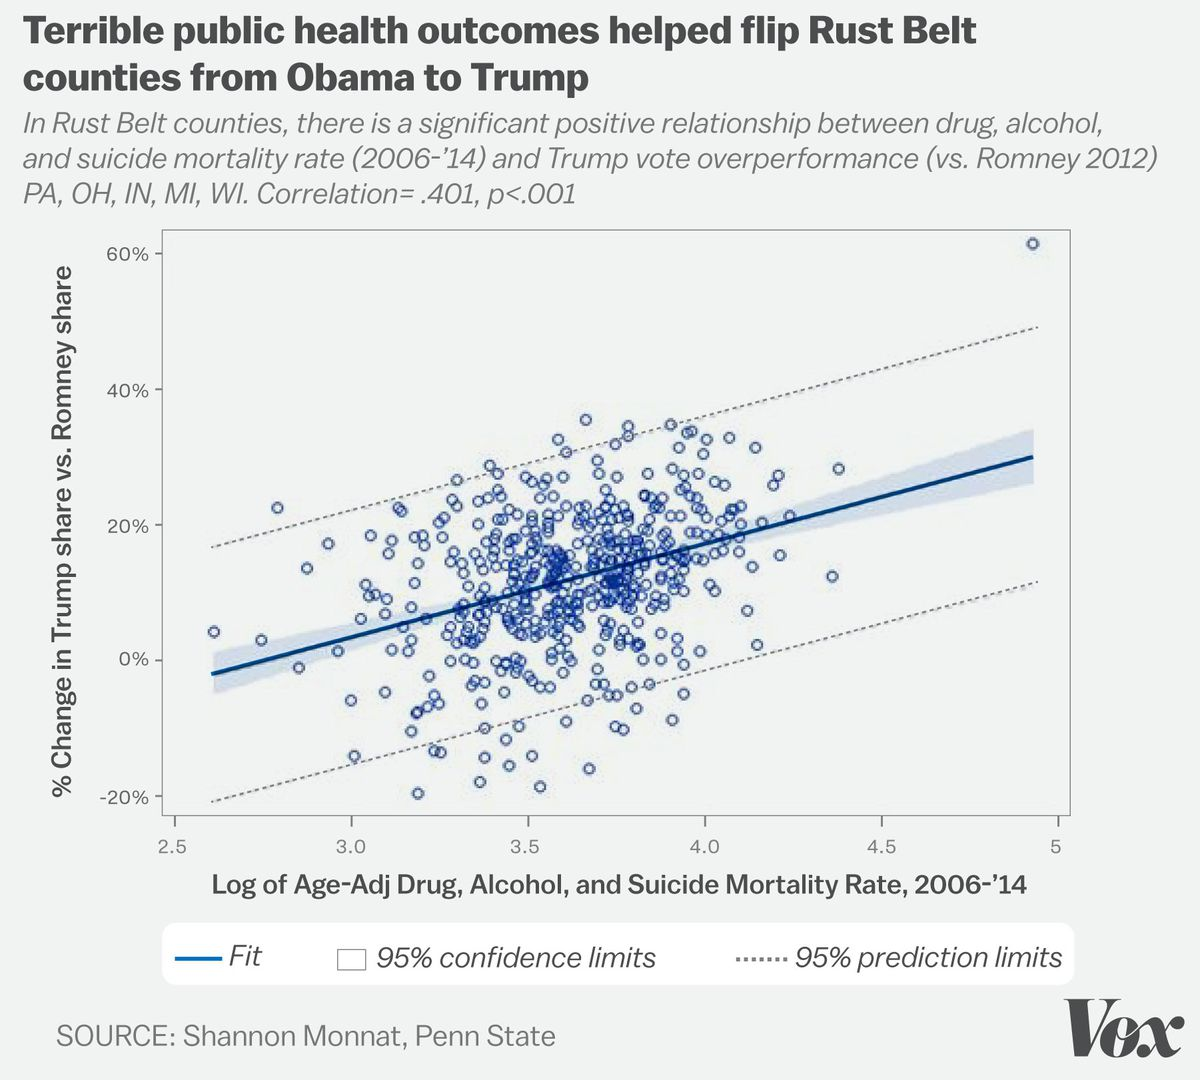 This chart shows the correlation between support for Trump and deaths from drugs, alcohol, and suicide.